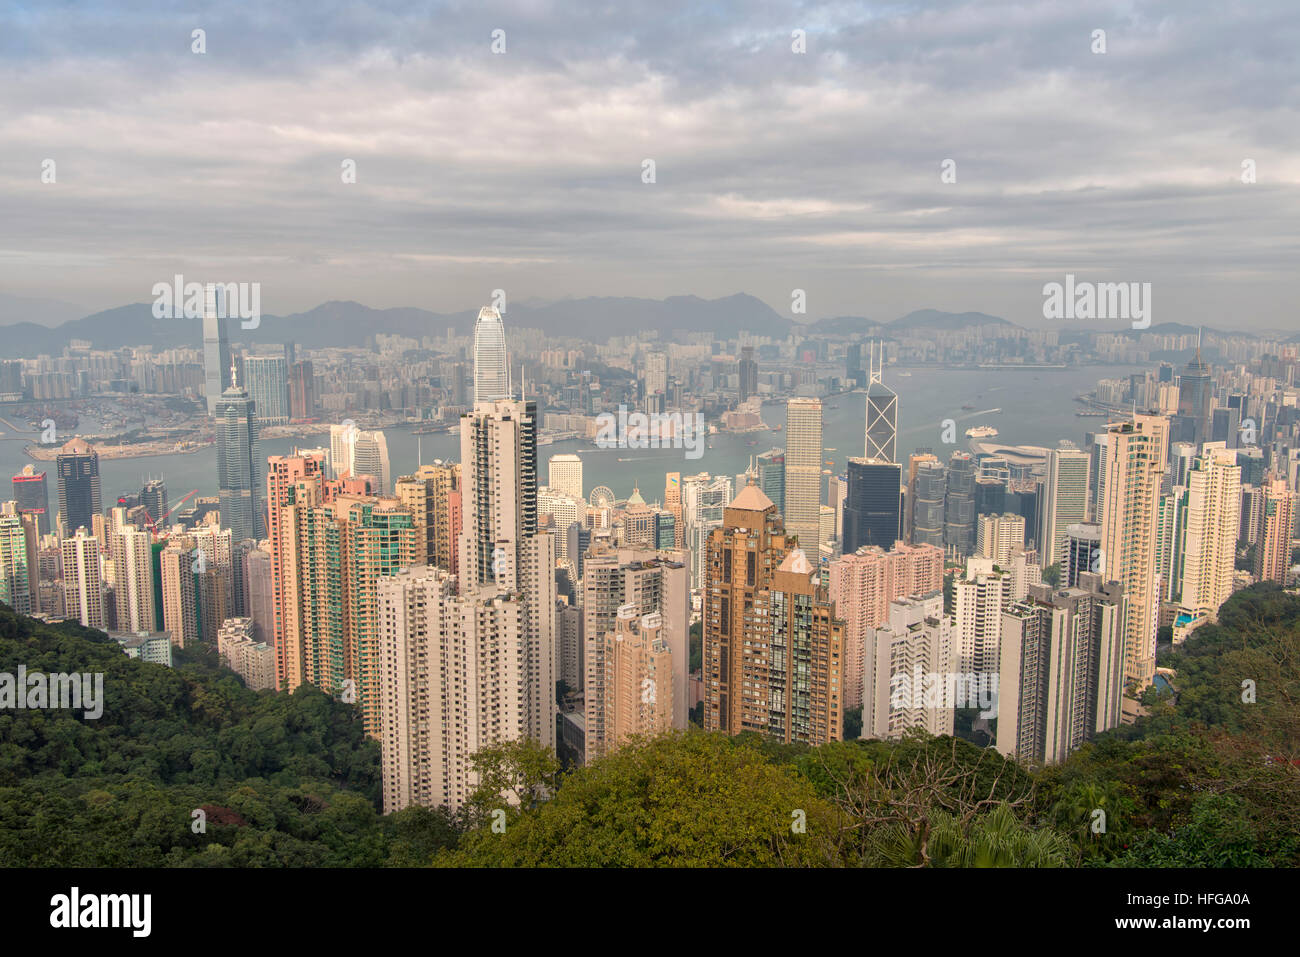 Hong Kong City, China - Stock Image